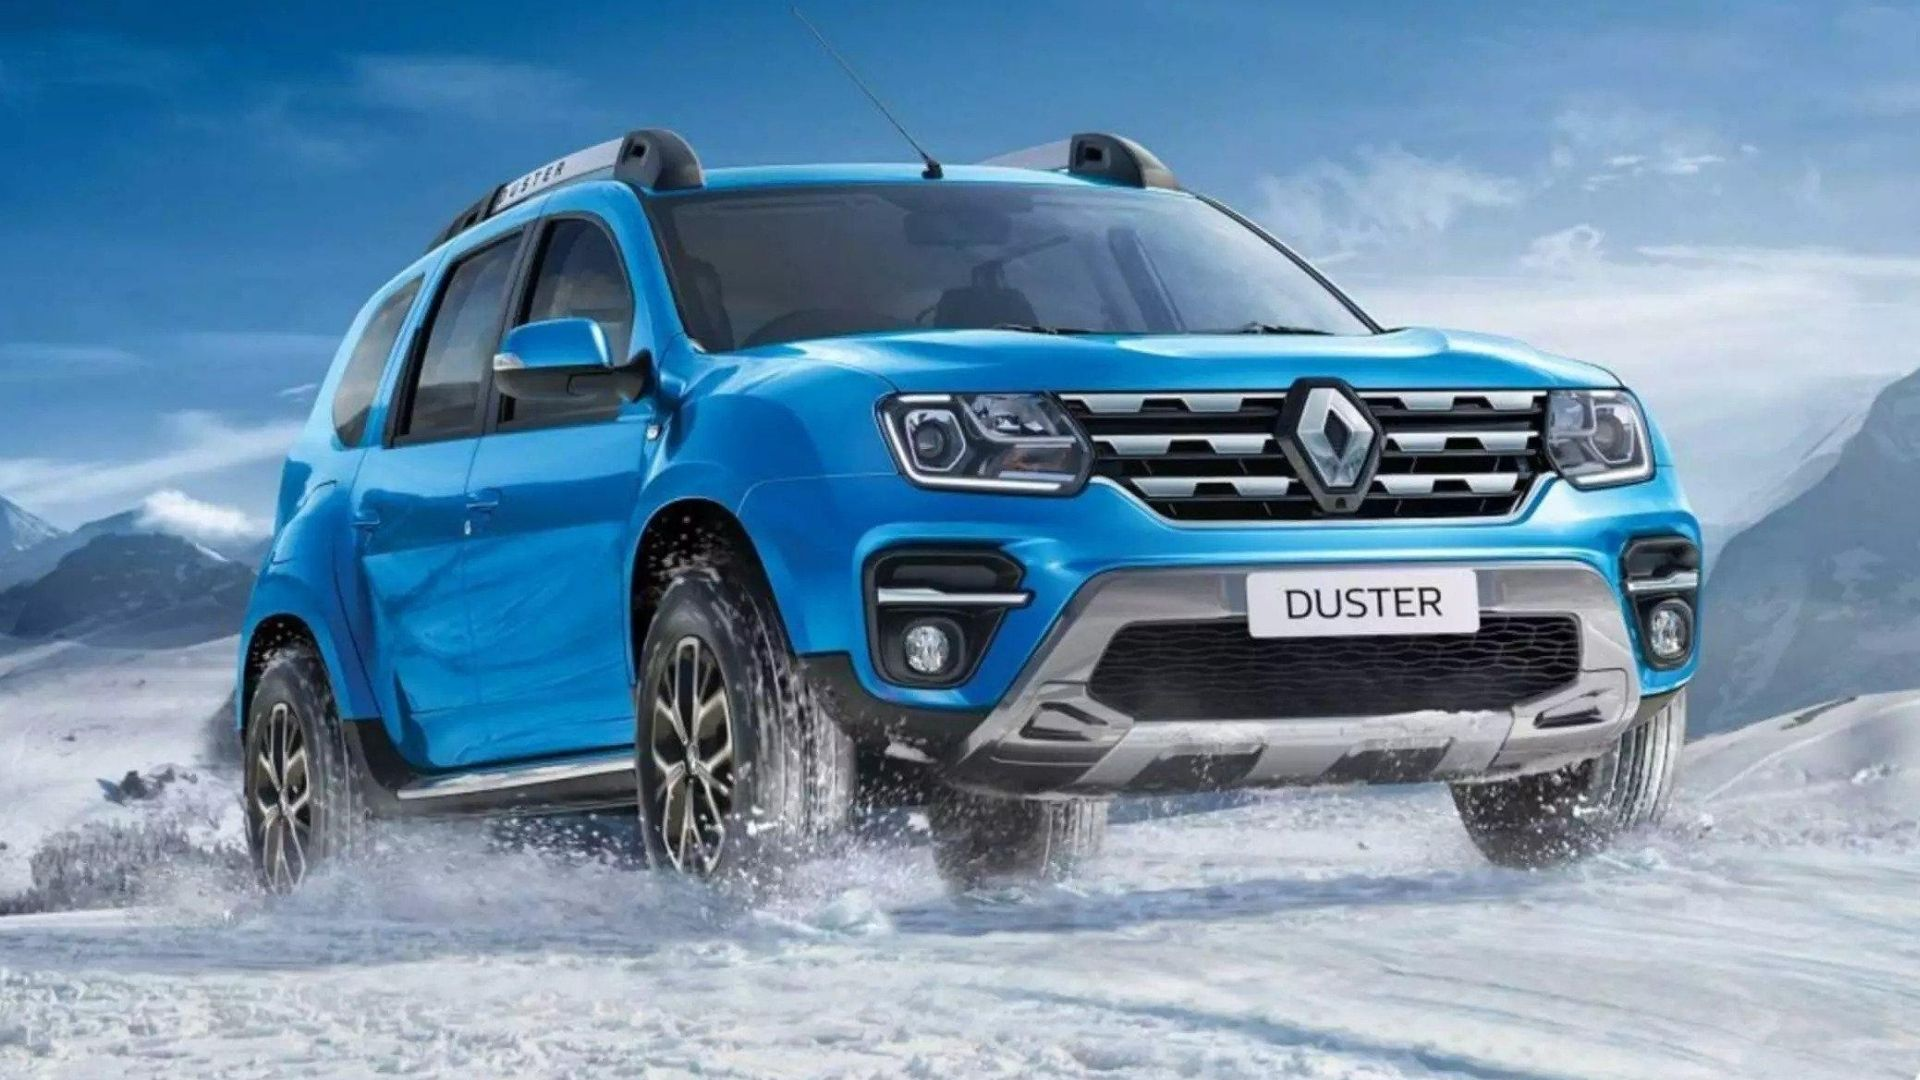 Renault Duster 1.3 Litre Turbo To Launch This Month